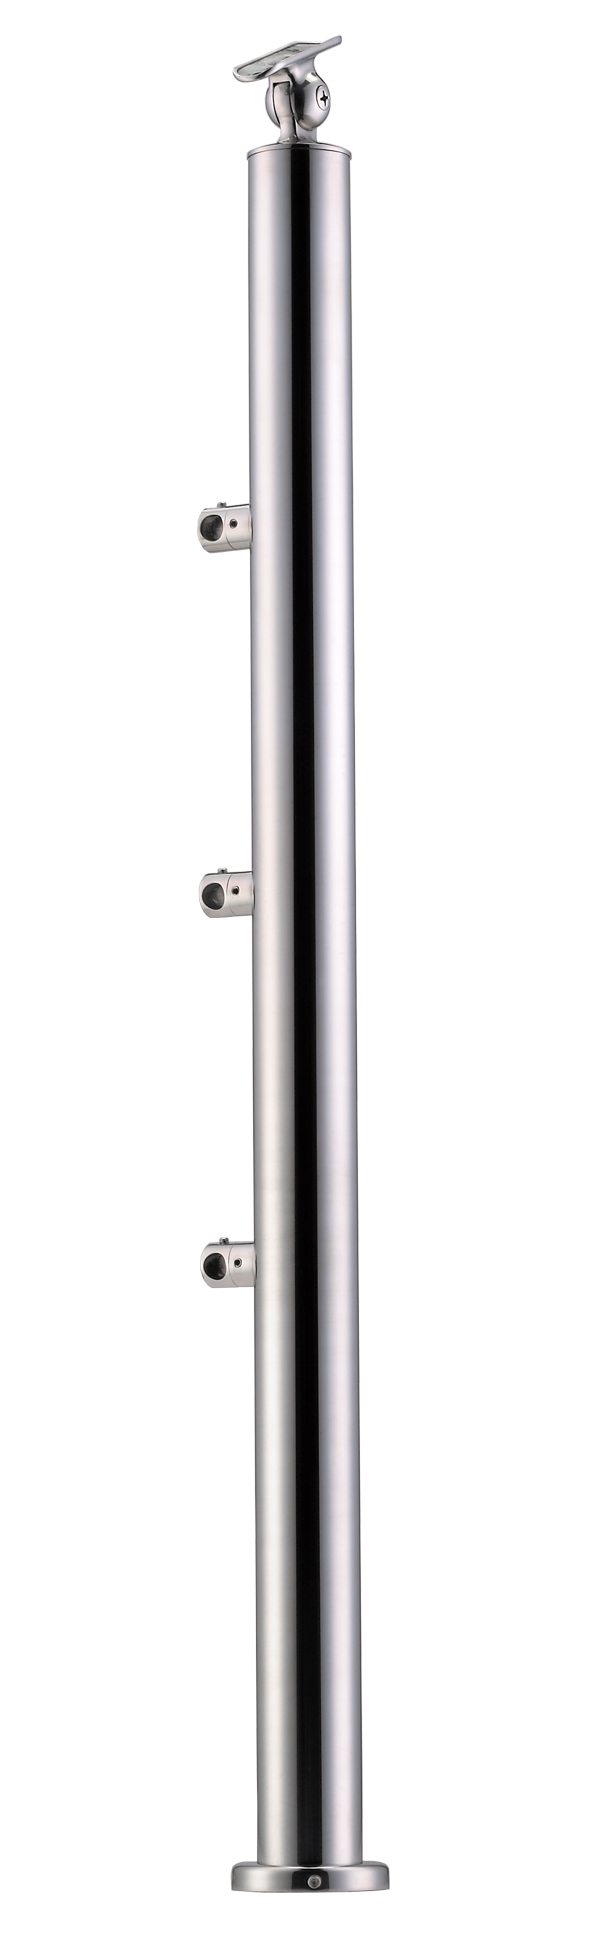 Stainless Steel Balustrade Posts - Tubular - SS:2020358A